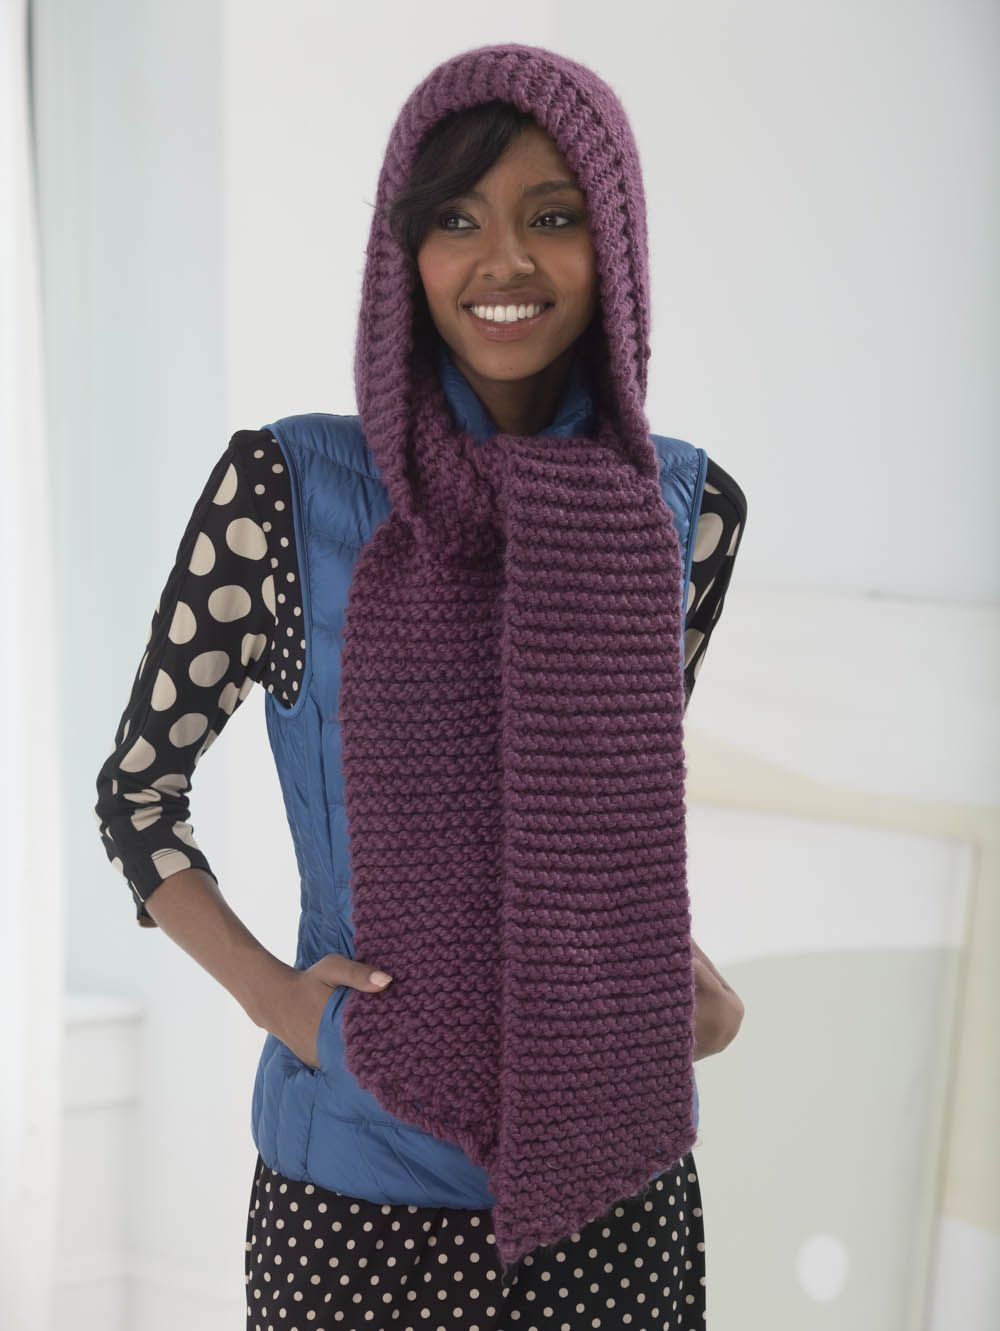 hooded scarf | Hooded scarf pattern, Loom scarf, Loom knitting